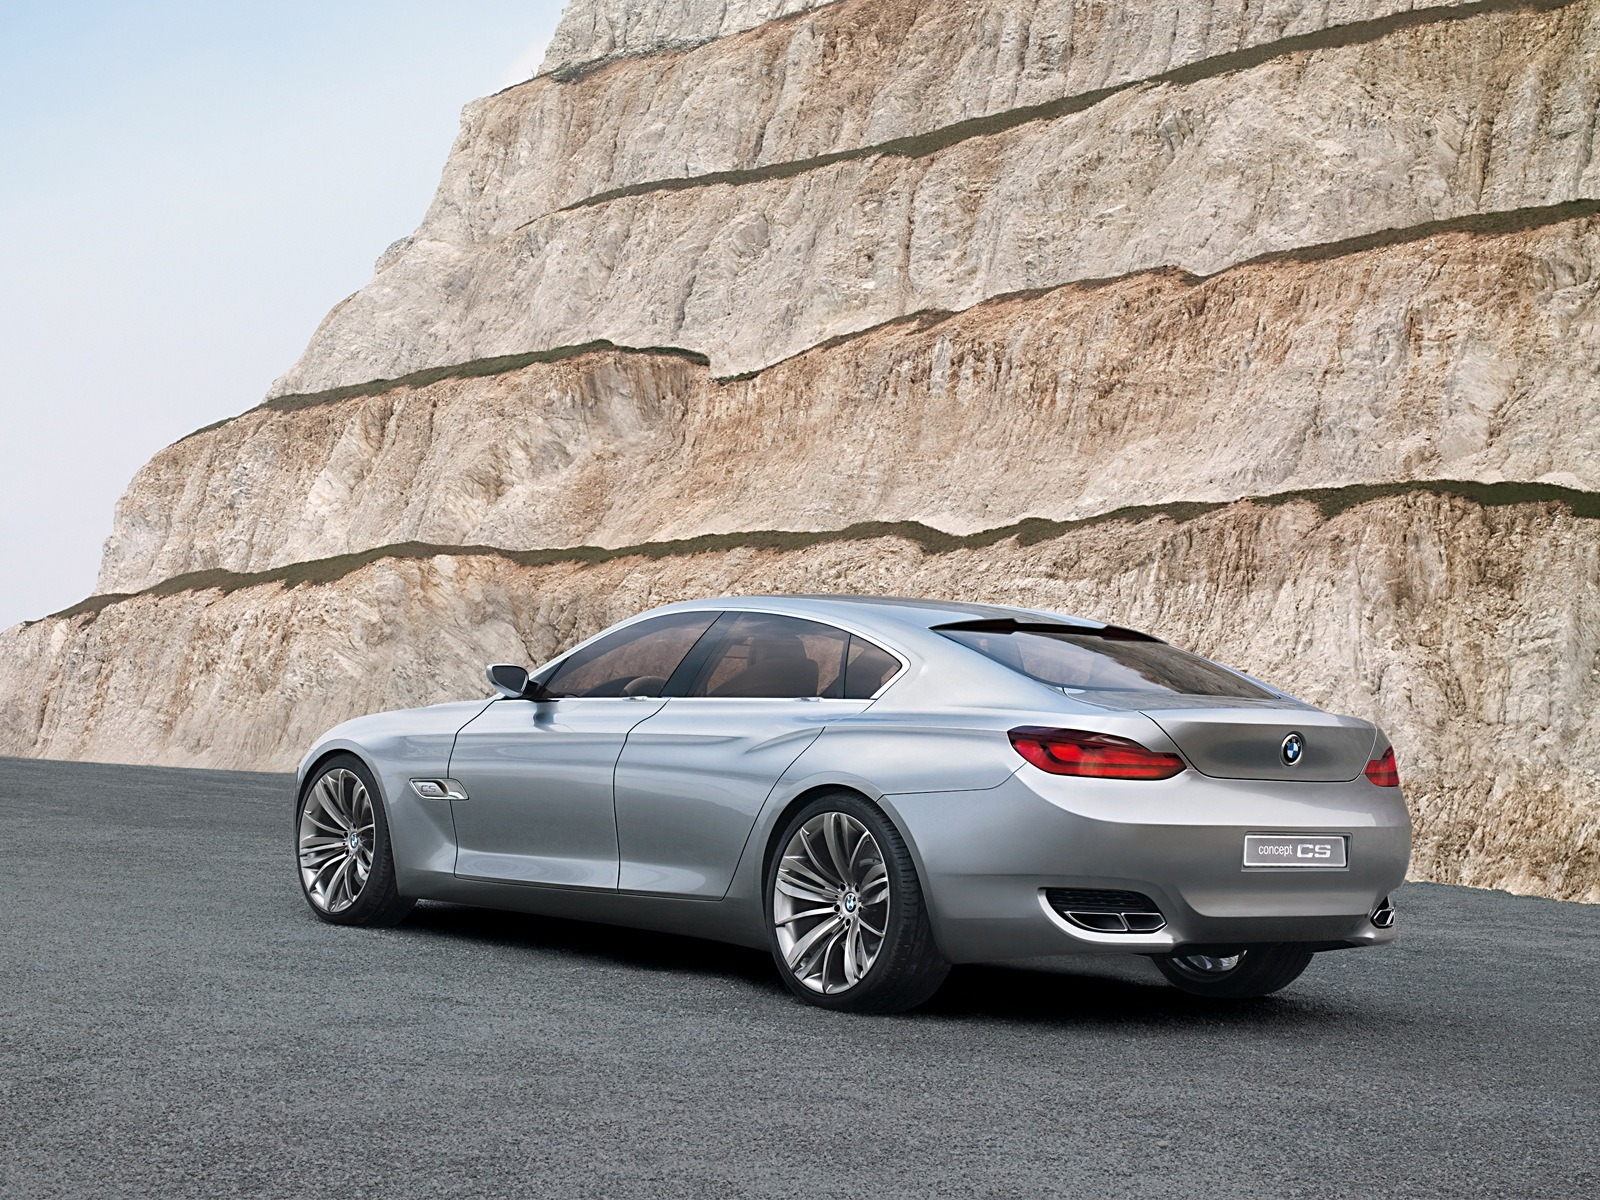 Bmw Cs Concept Wallpaper Bmw Cars Wallpapers In Jpg Format For Free